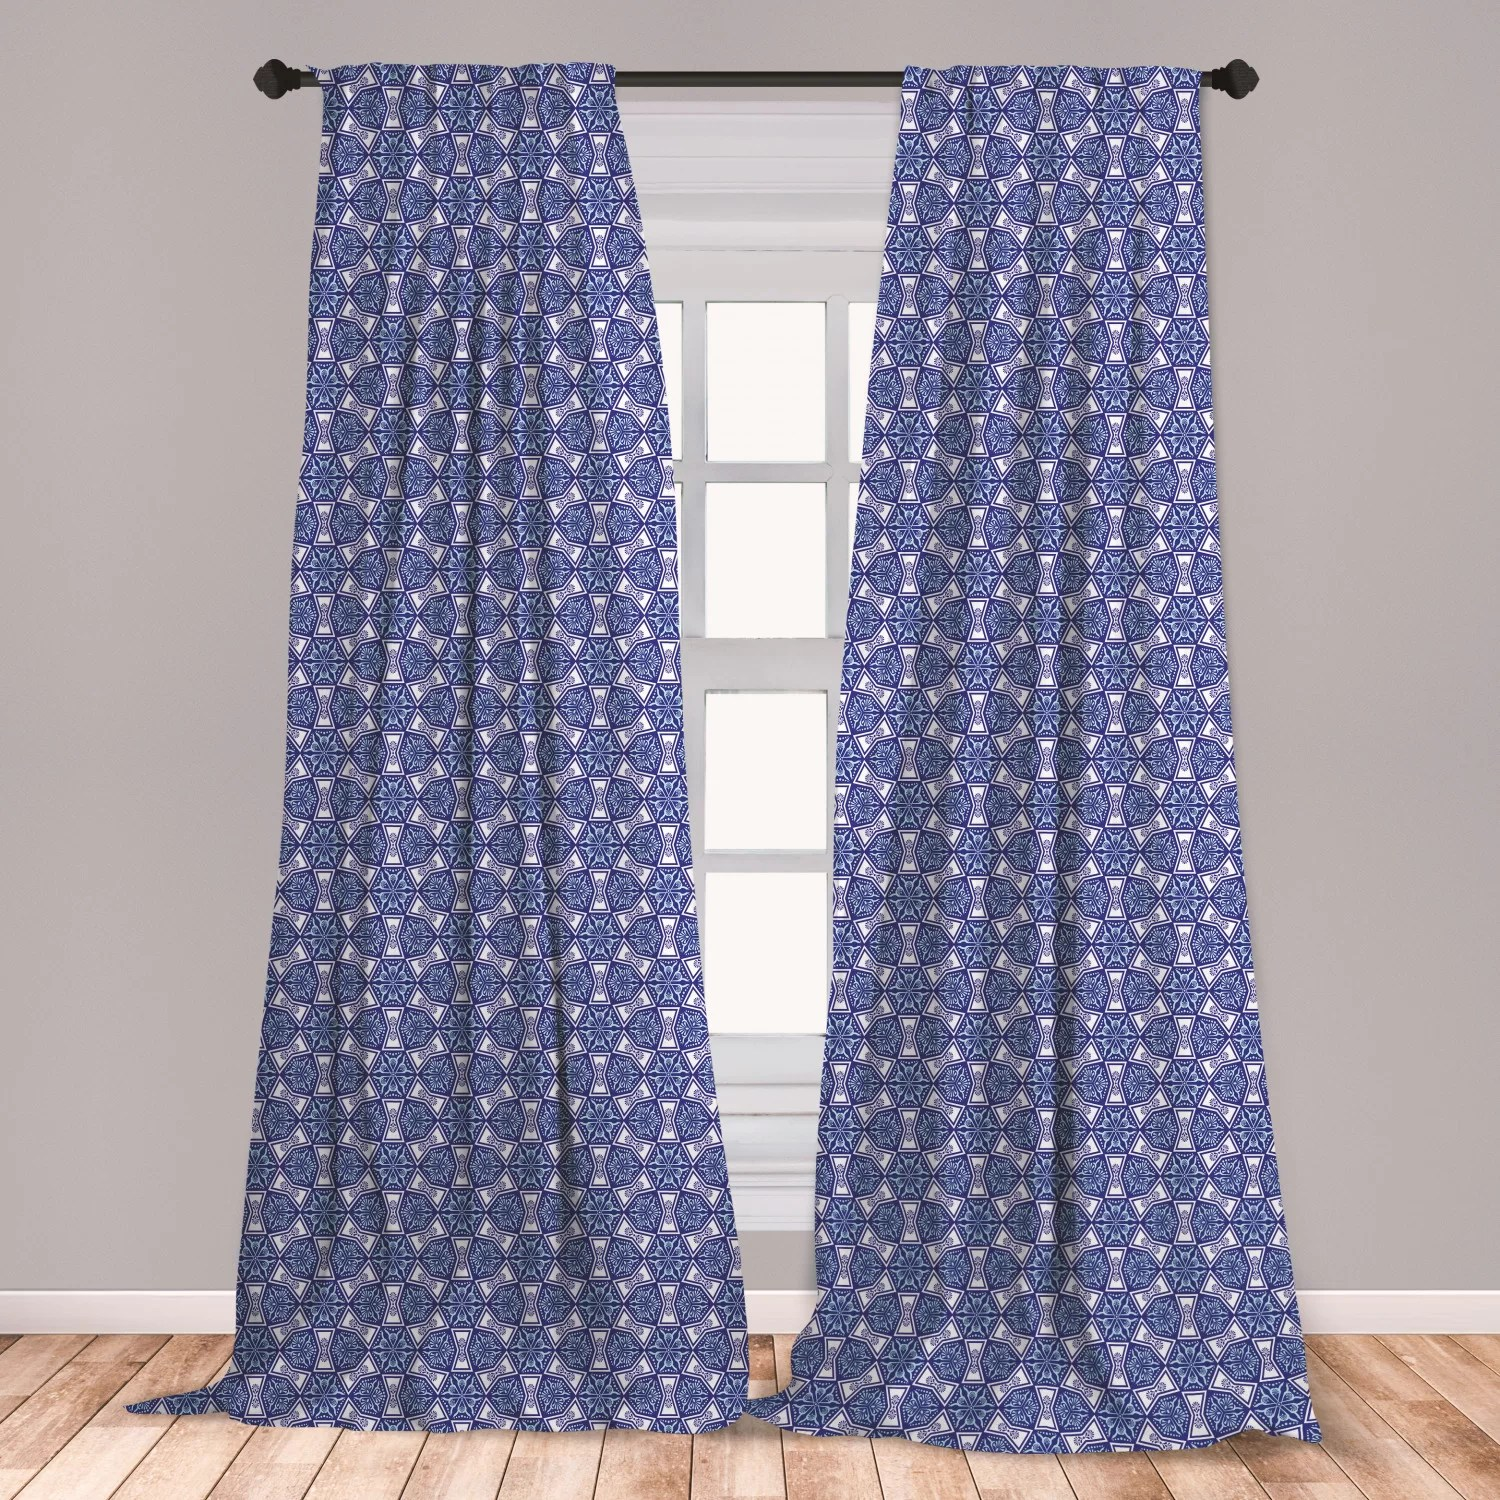 ambesonne turkish pattern window curtains blue and white intricate mosaic inspired by art lightweight decorative panels set of 2 with rod pocket